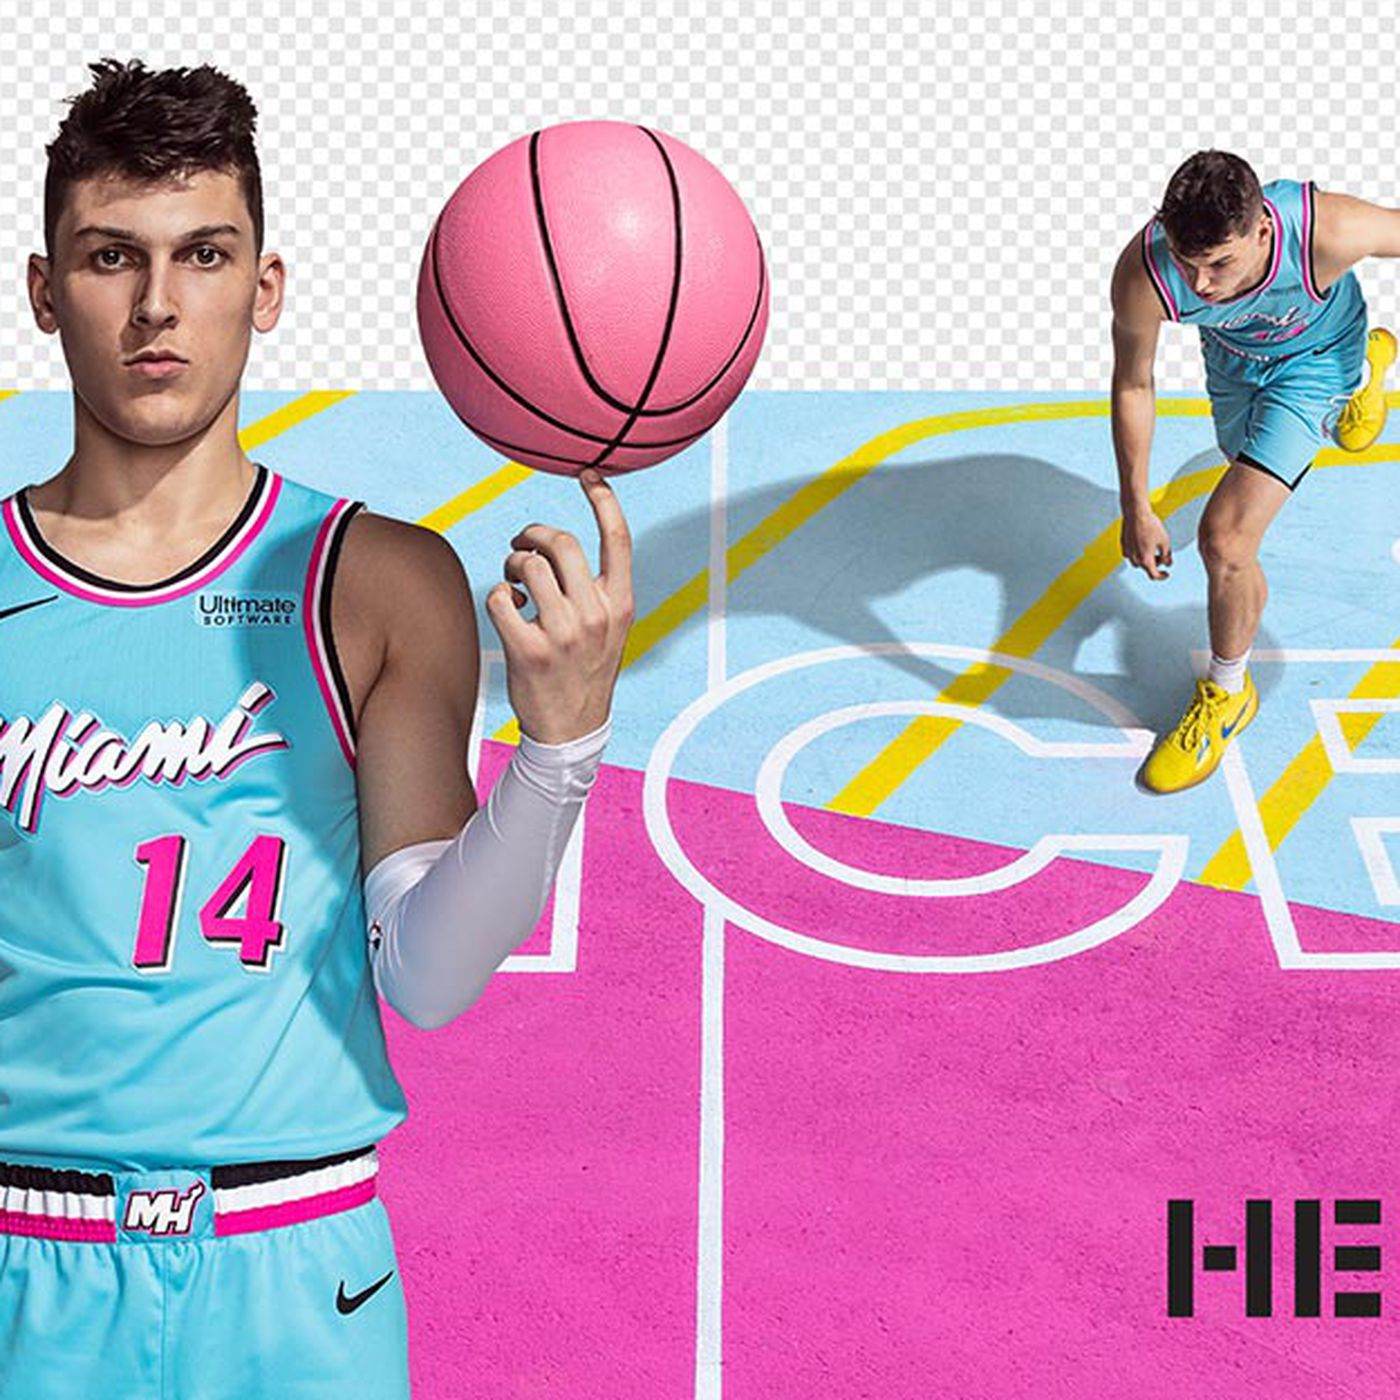 Vicewave Hits The 305 Here S All You Need To Know About The Miami Heat Latest Vice Jersey And More Hot Hot Hoops